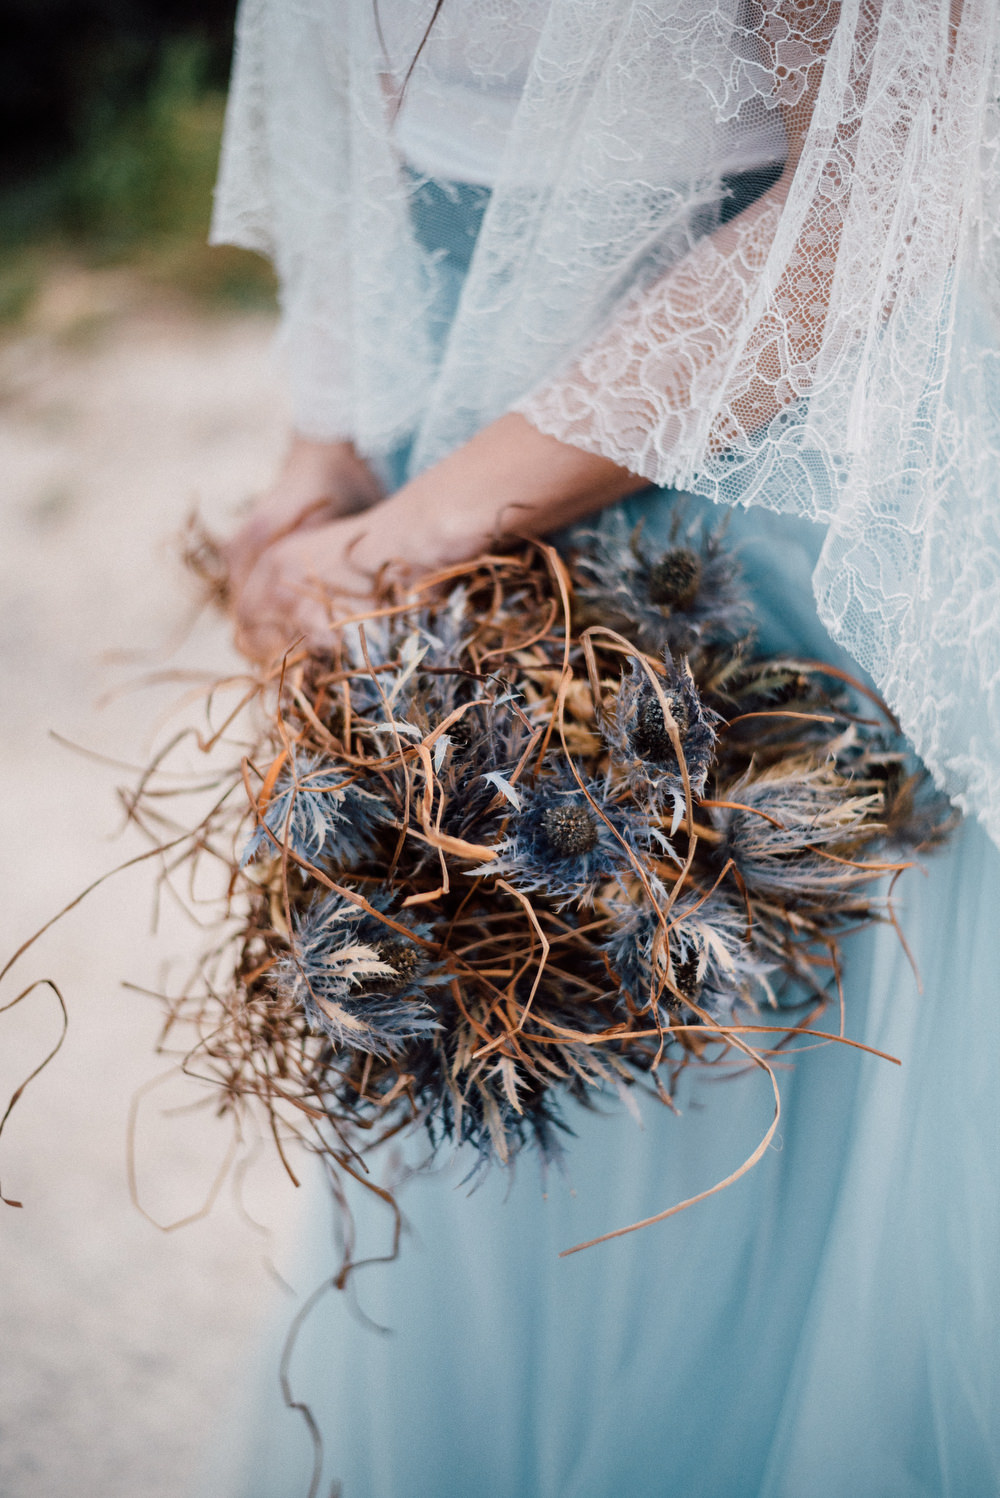 Outdoor Wild Nature Destination Spain Europe Sea Beach Styled Shoot Bride Blue Gown Lace Sea Holly Bouquet   Blue Ibiza Elopement Ideas and Surprise Proposal Serena Genovese Photography